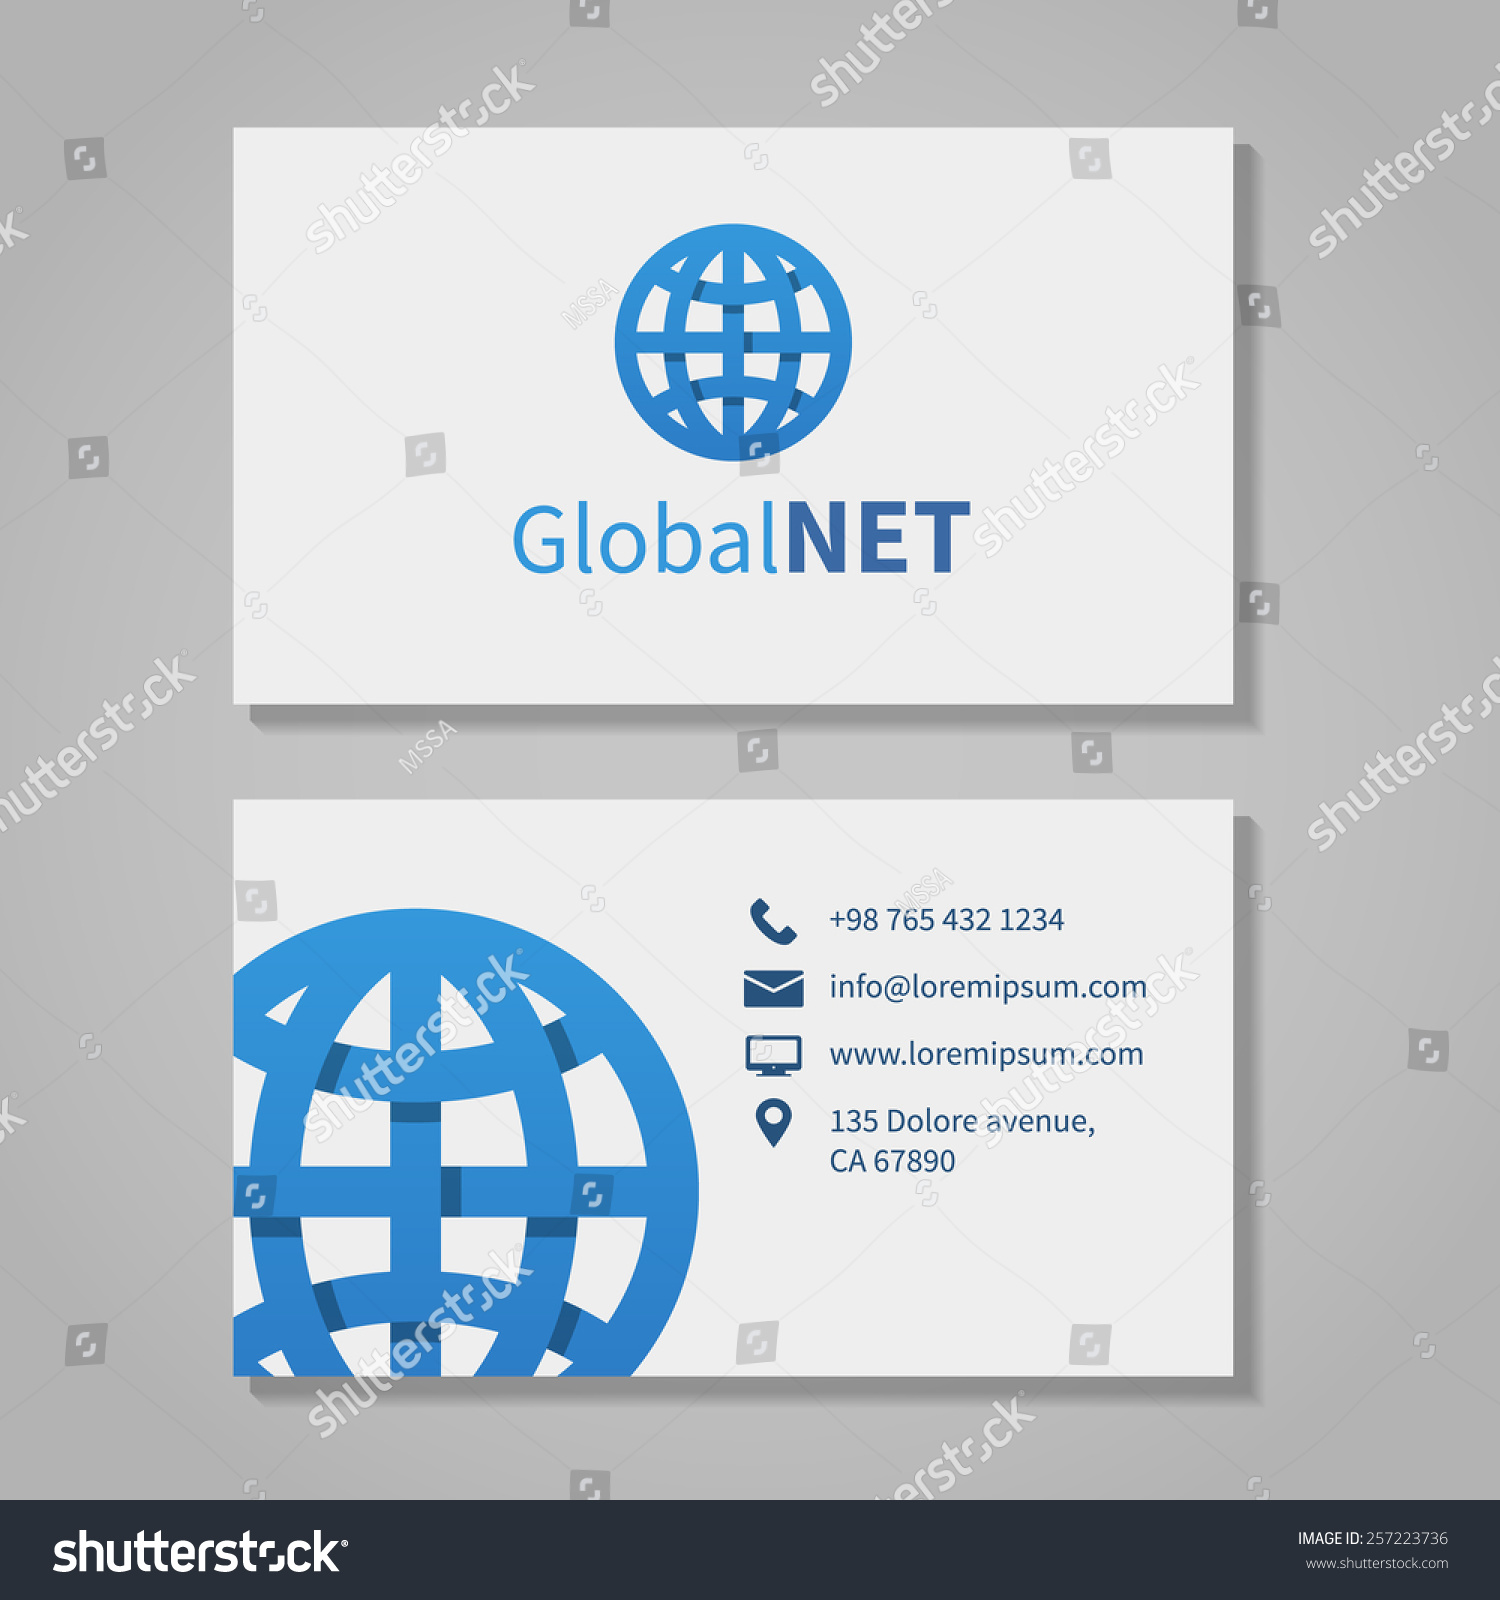 Global Corporation Business Card Phone Number Stock Vector ...